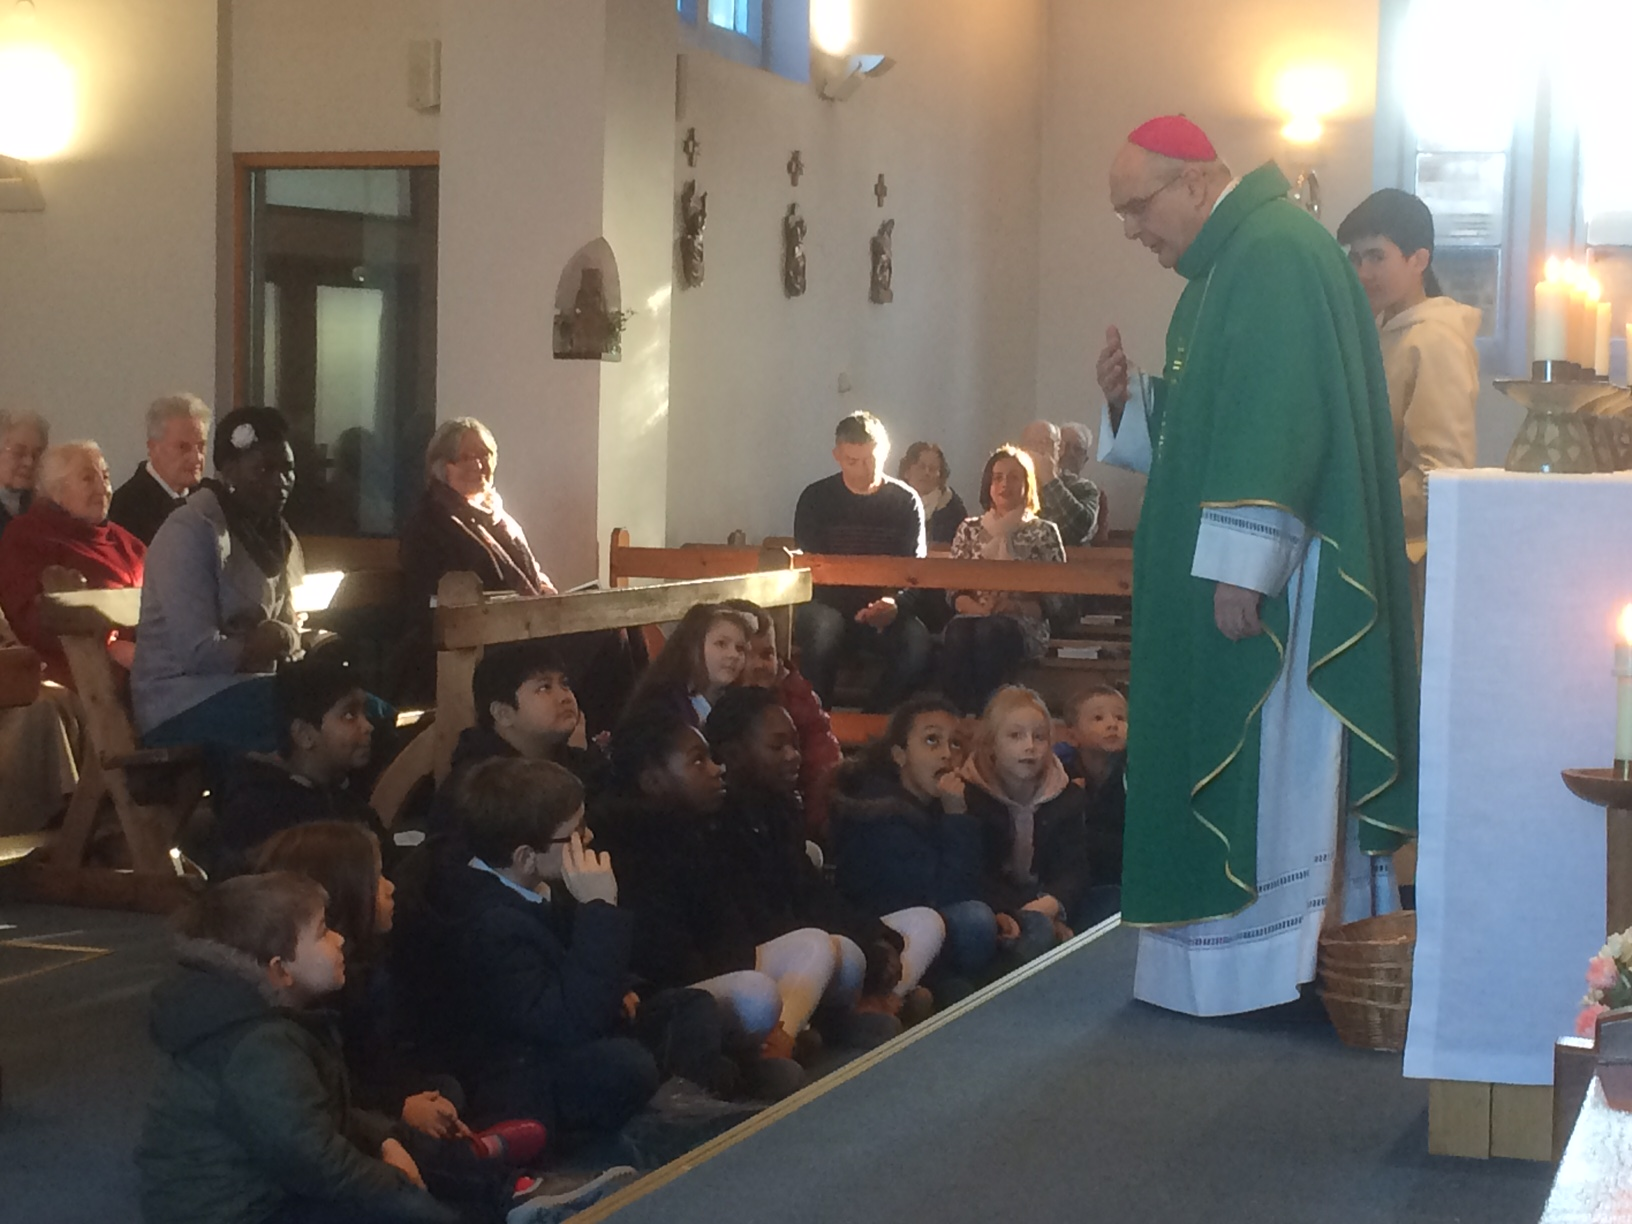 Bishop Alan explains to the children at Our Lady's what a bishop is and does